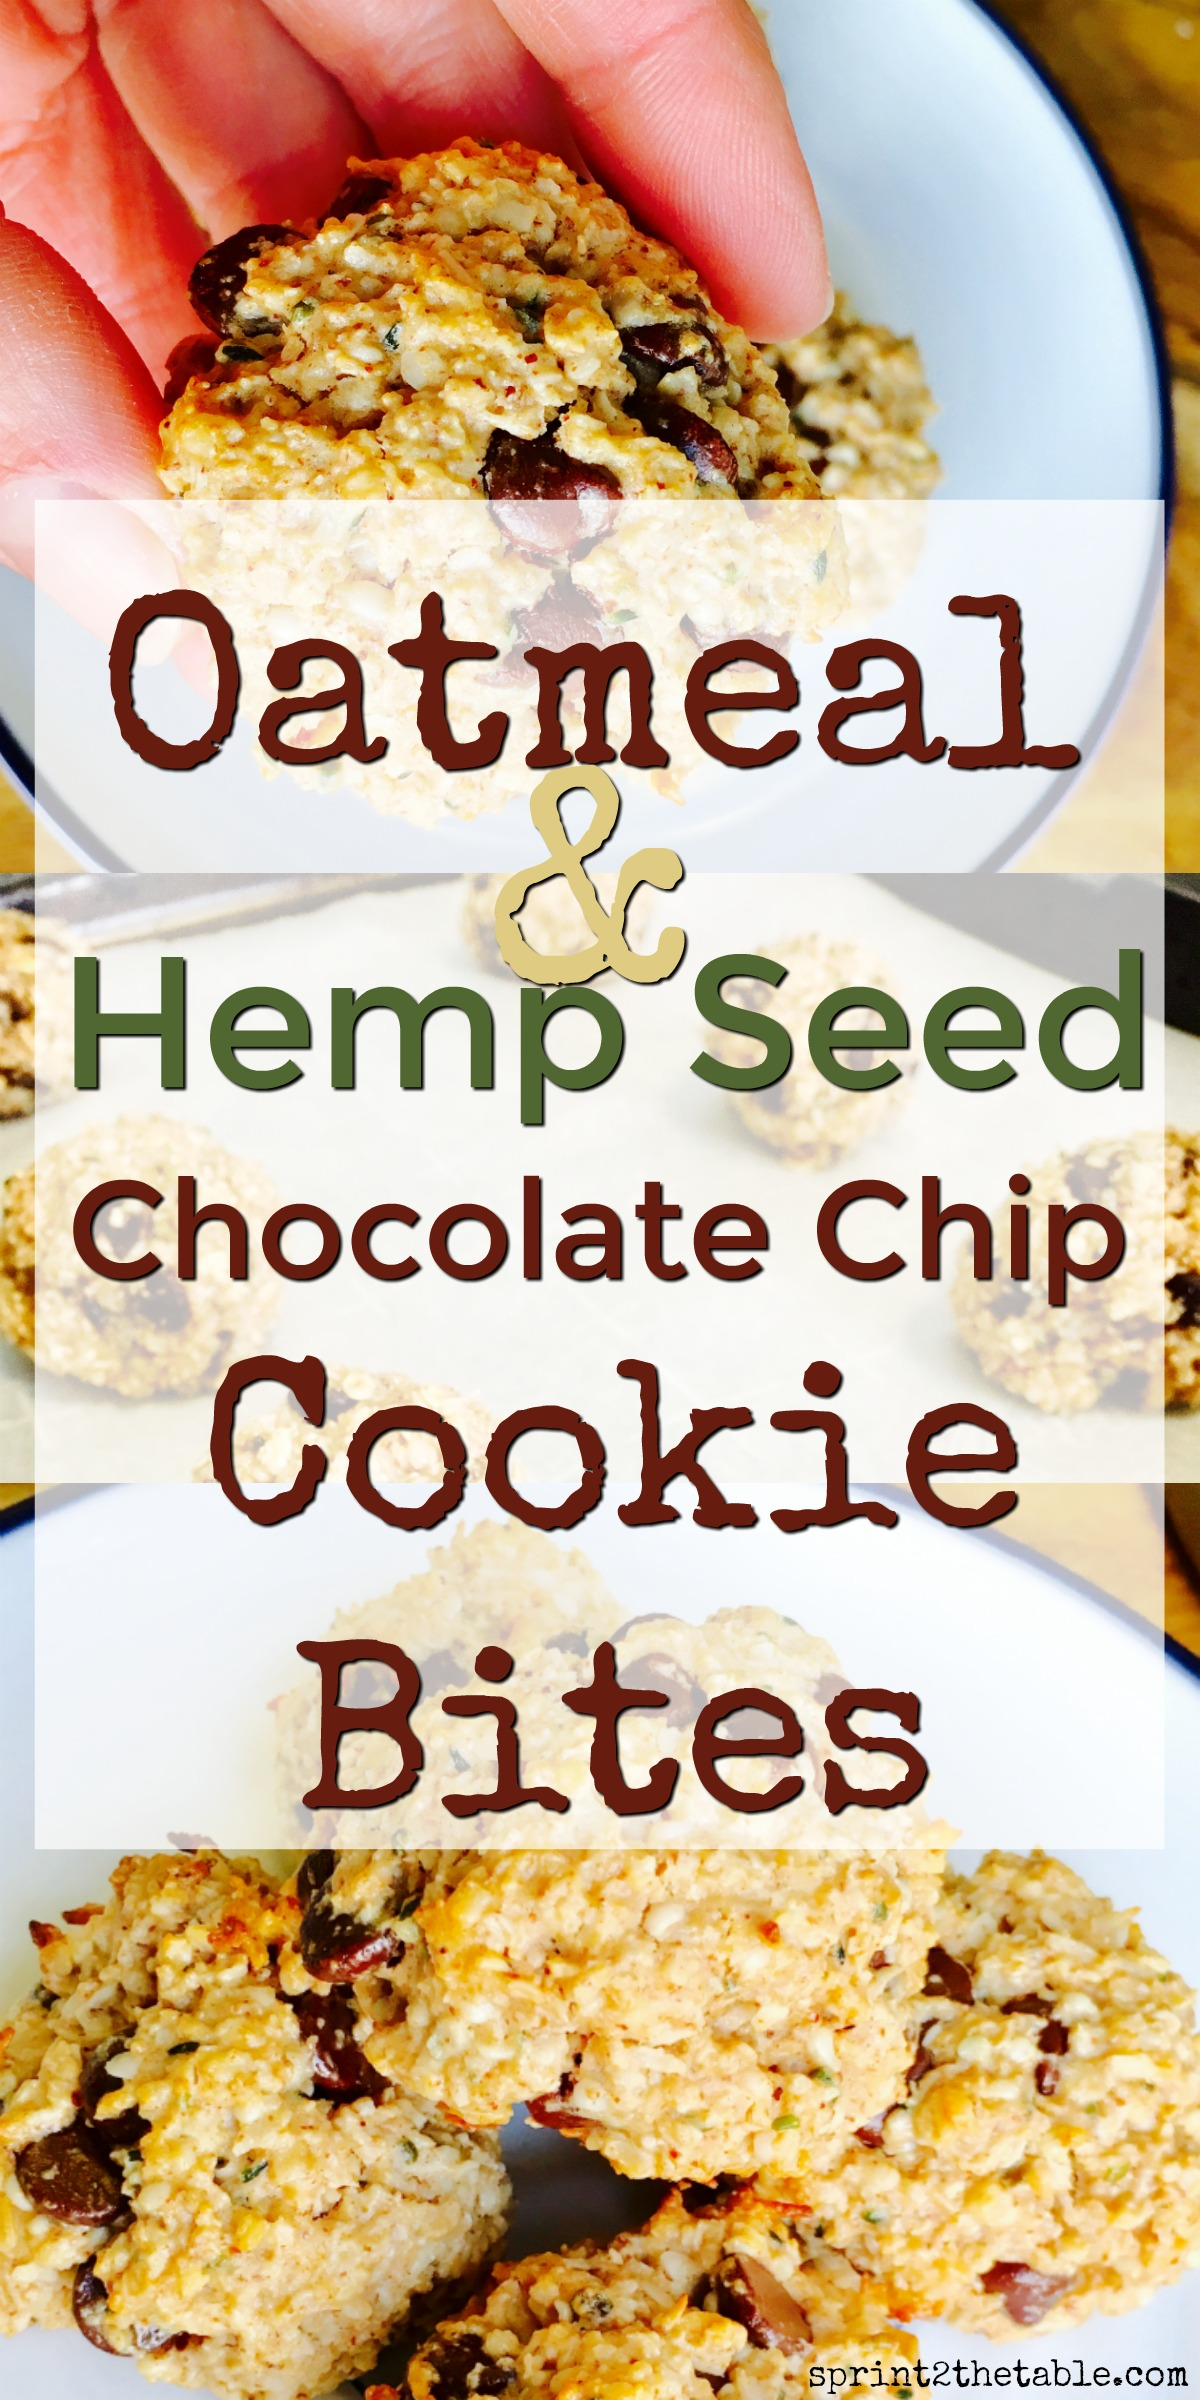 These Oatmeal Hemp Seed Cookie Bites are a delicious marriage of chocolate chip oatmeal cookies and coconut macaroons. Best of all, they're packed with nutrient-rich ingredients like oats, dark chocolate, and hemp seed.